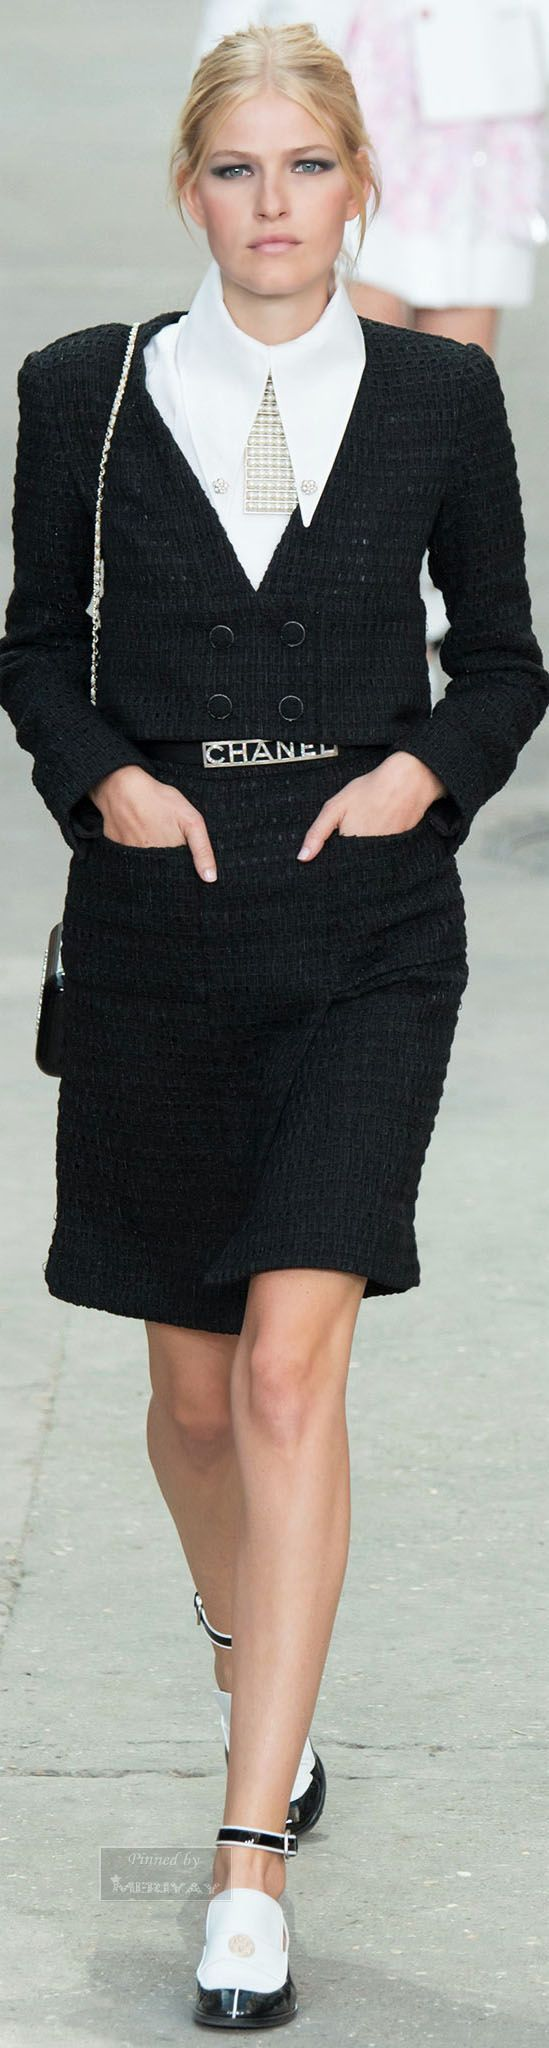 Chanel.Spring 2015. I've been waiting far too long for those big collars to come